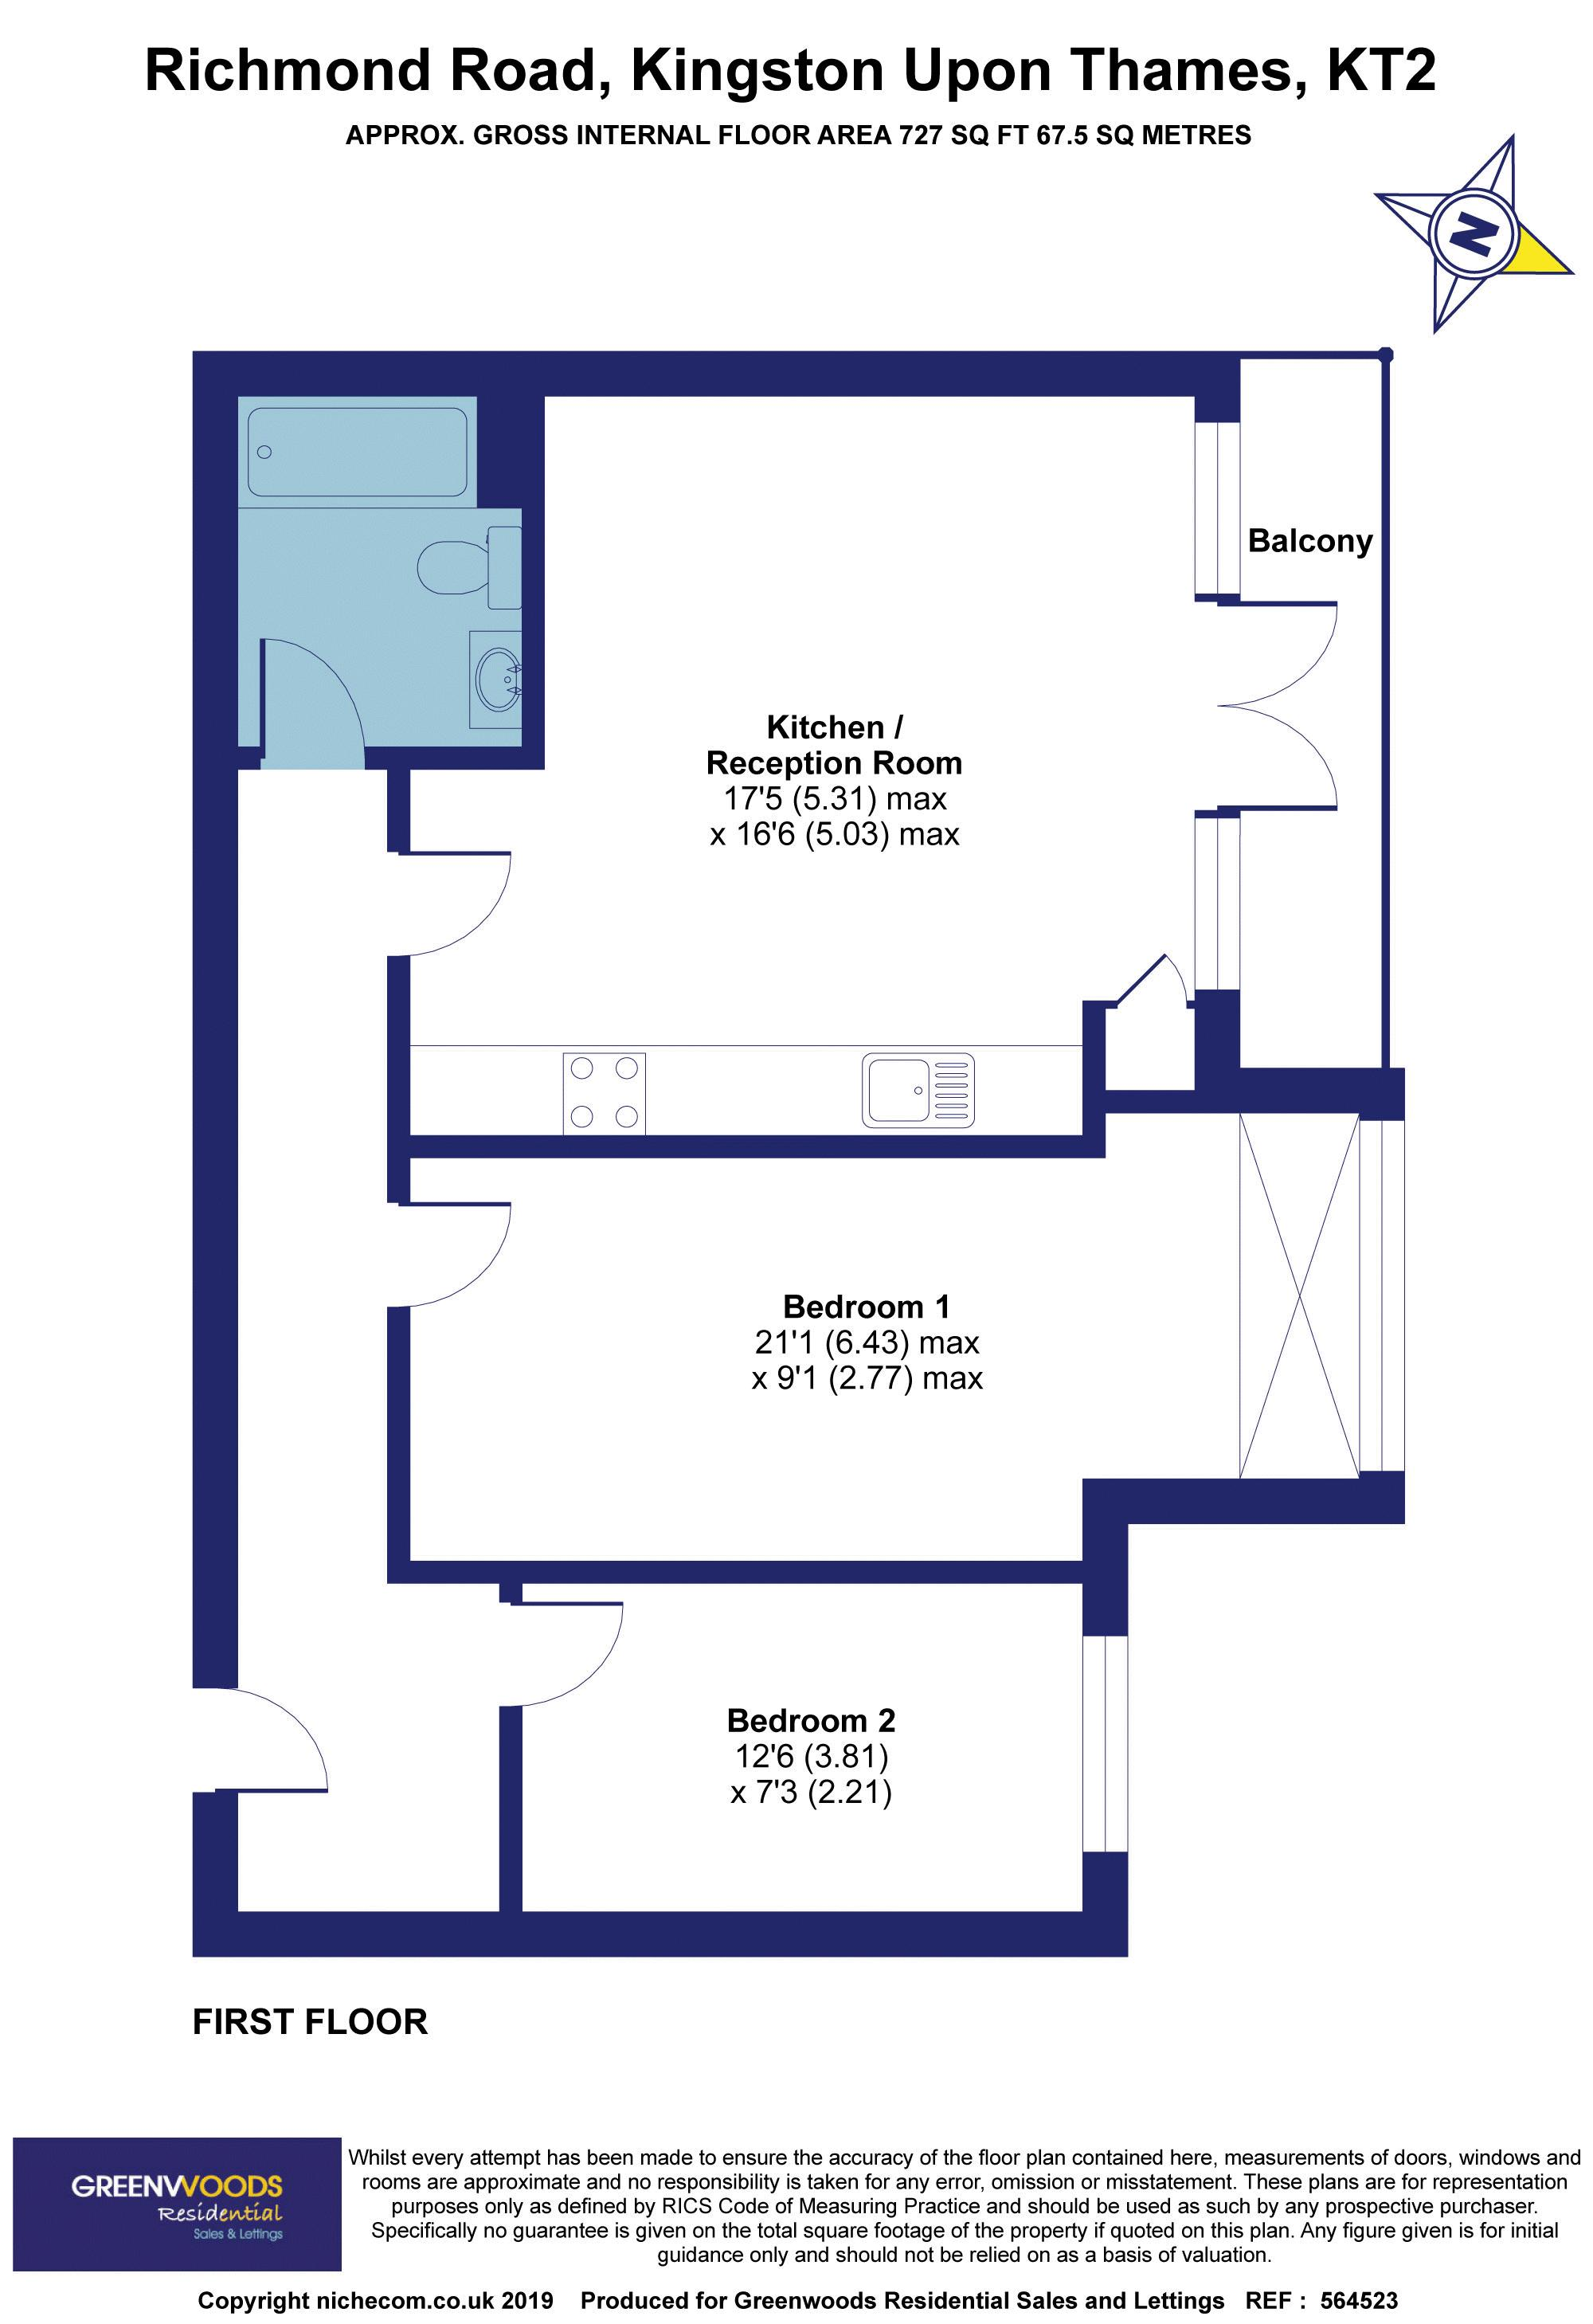 2D Floorplan Greenwoods